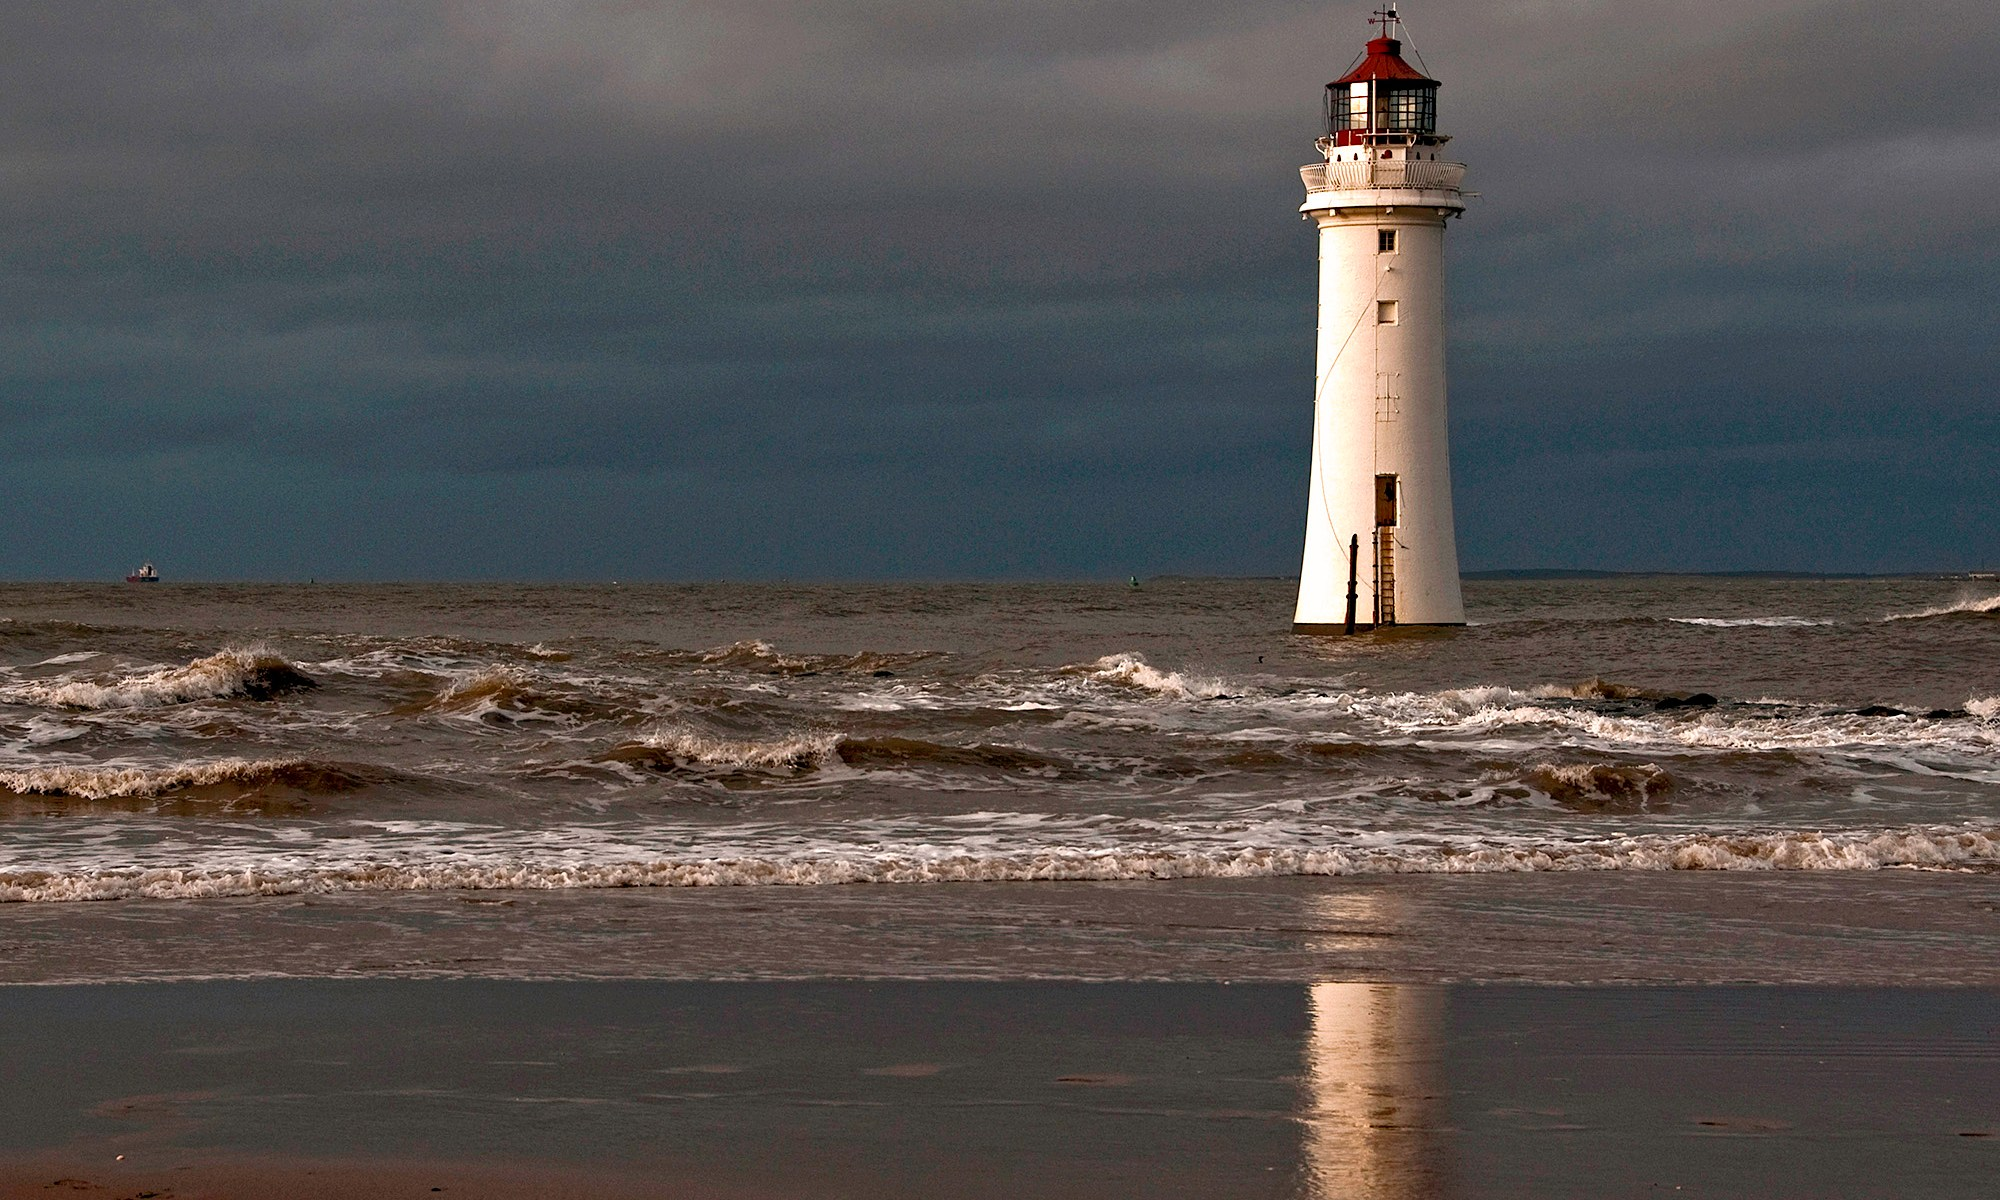 Lighthouse at New Brighton, Merseyside